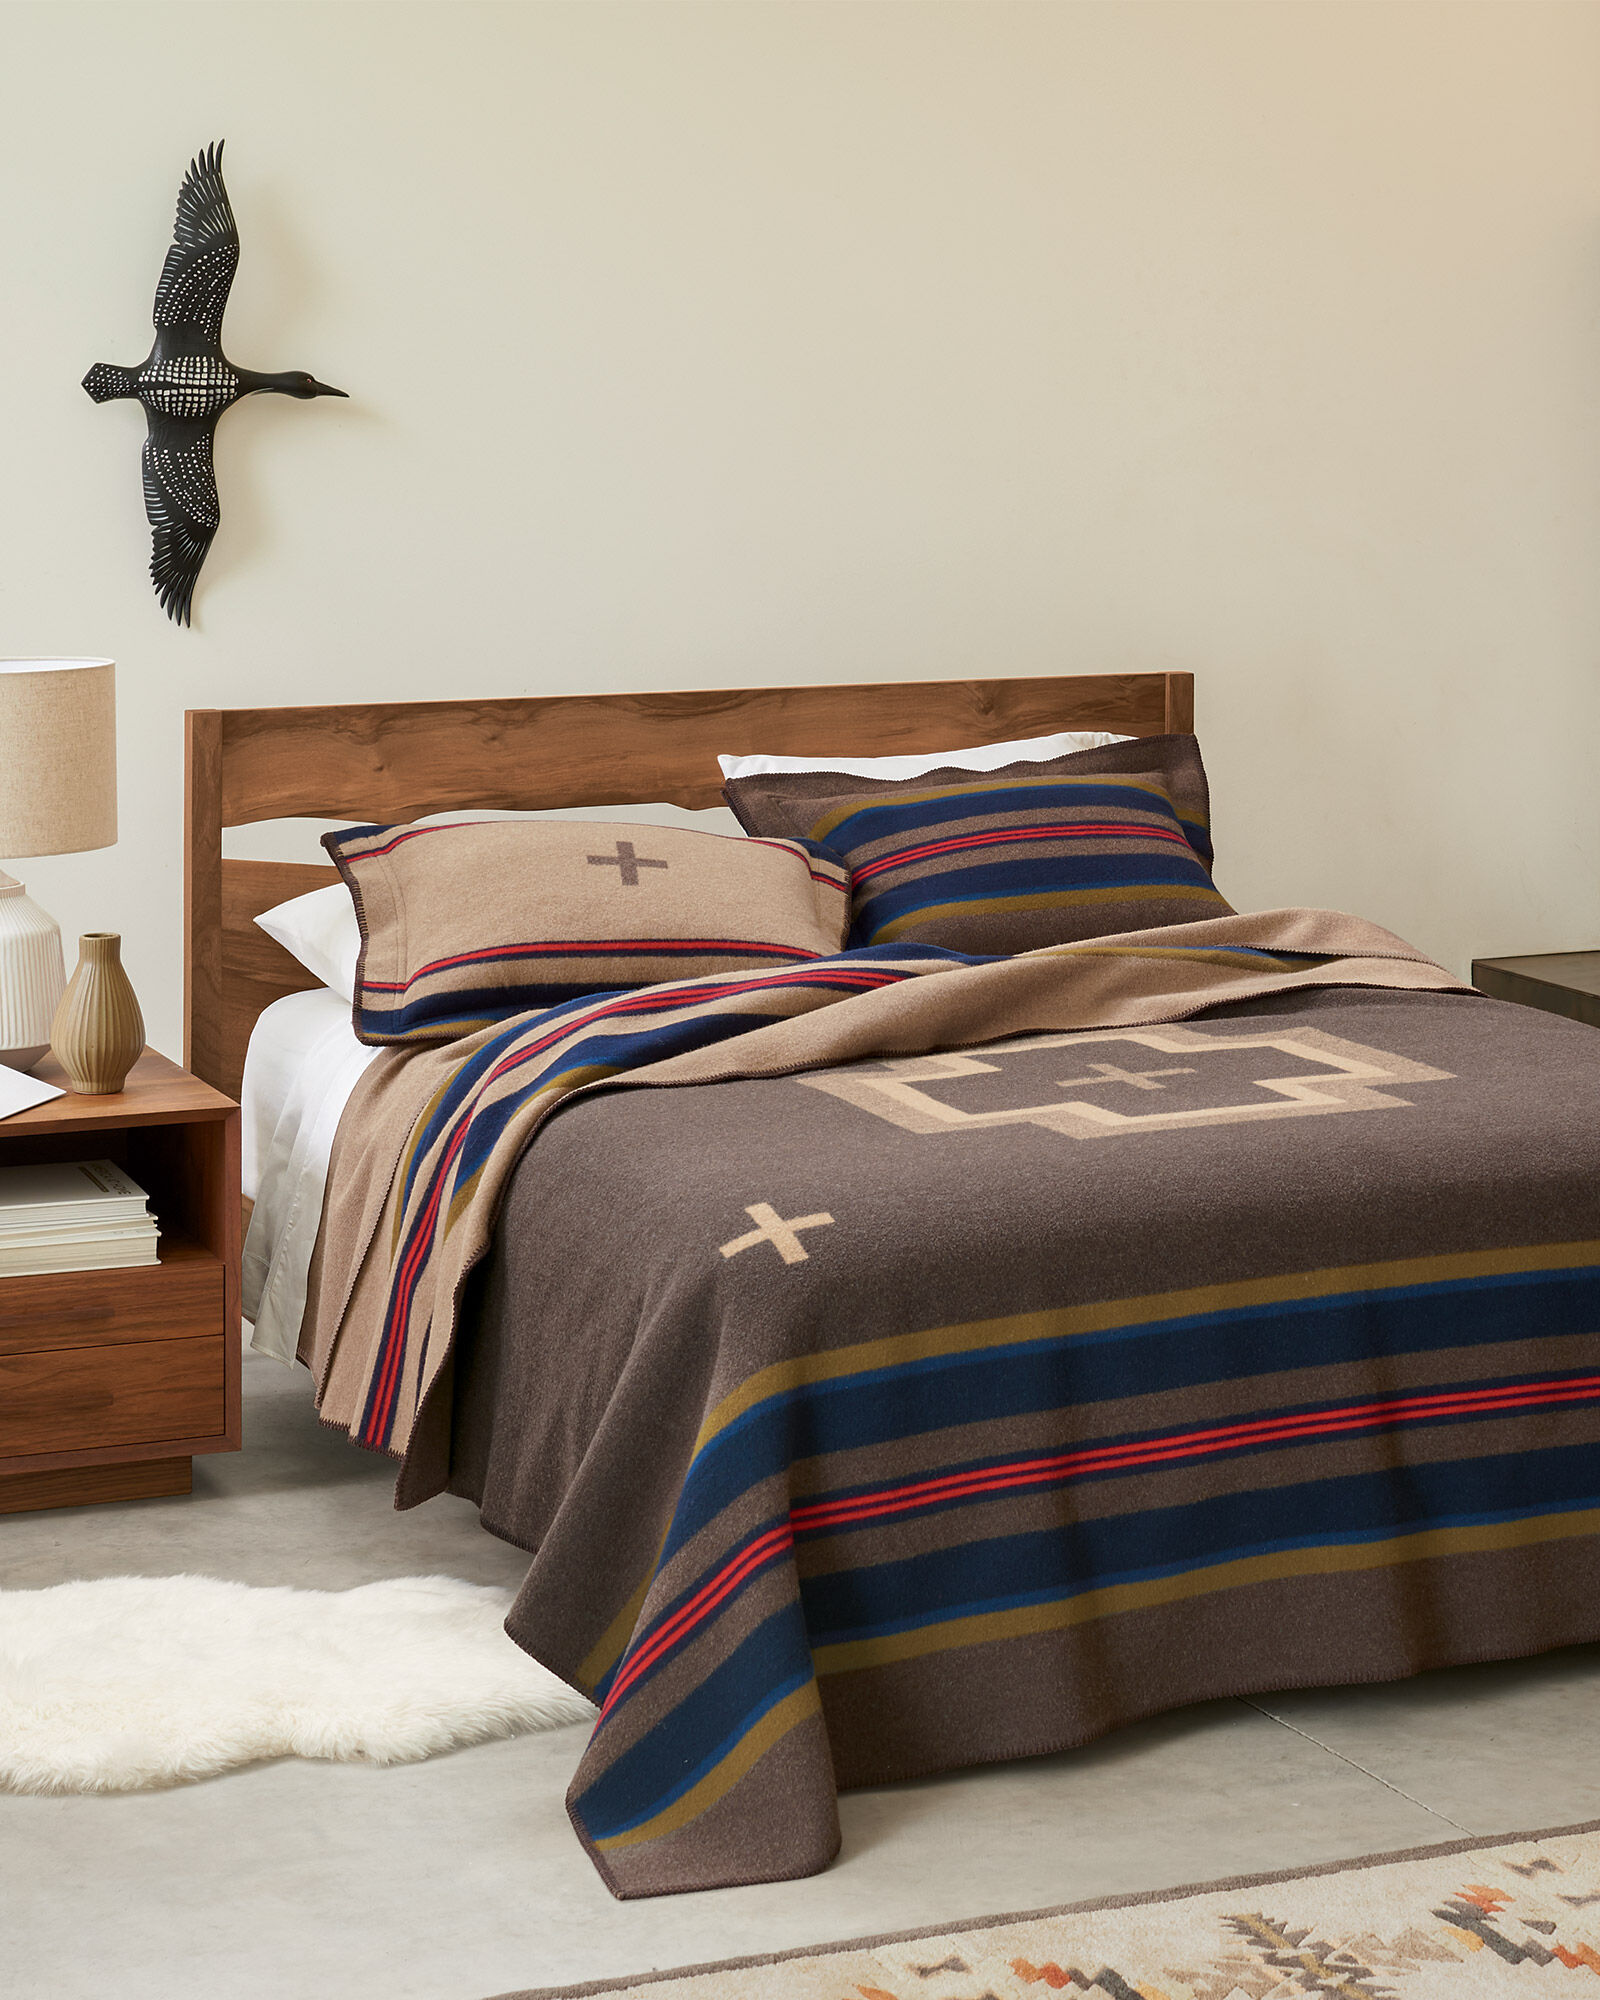 Bed with Shelter bay Pendleton blanket. Blanket is brown with navy, tan and red stripes, and large tan central cross, with smaller crossed in corners.